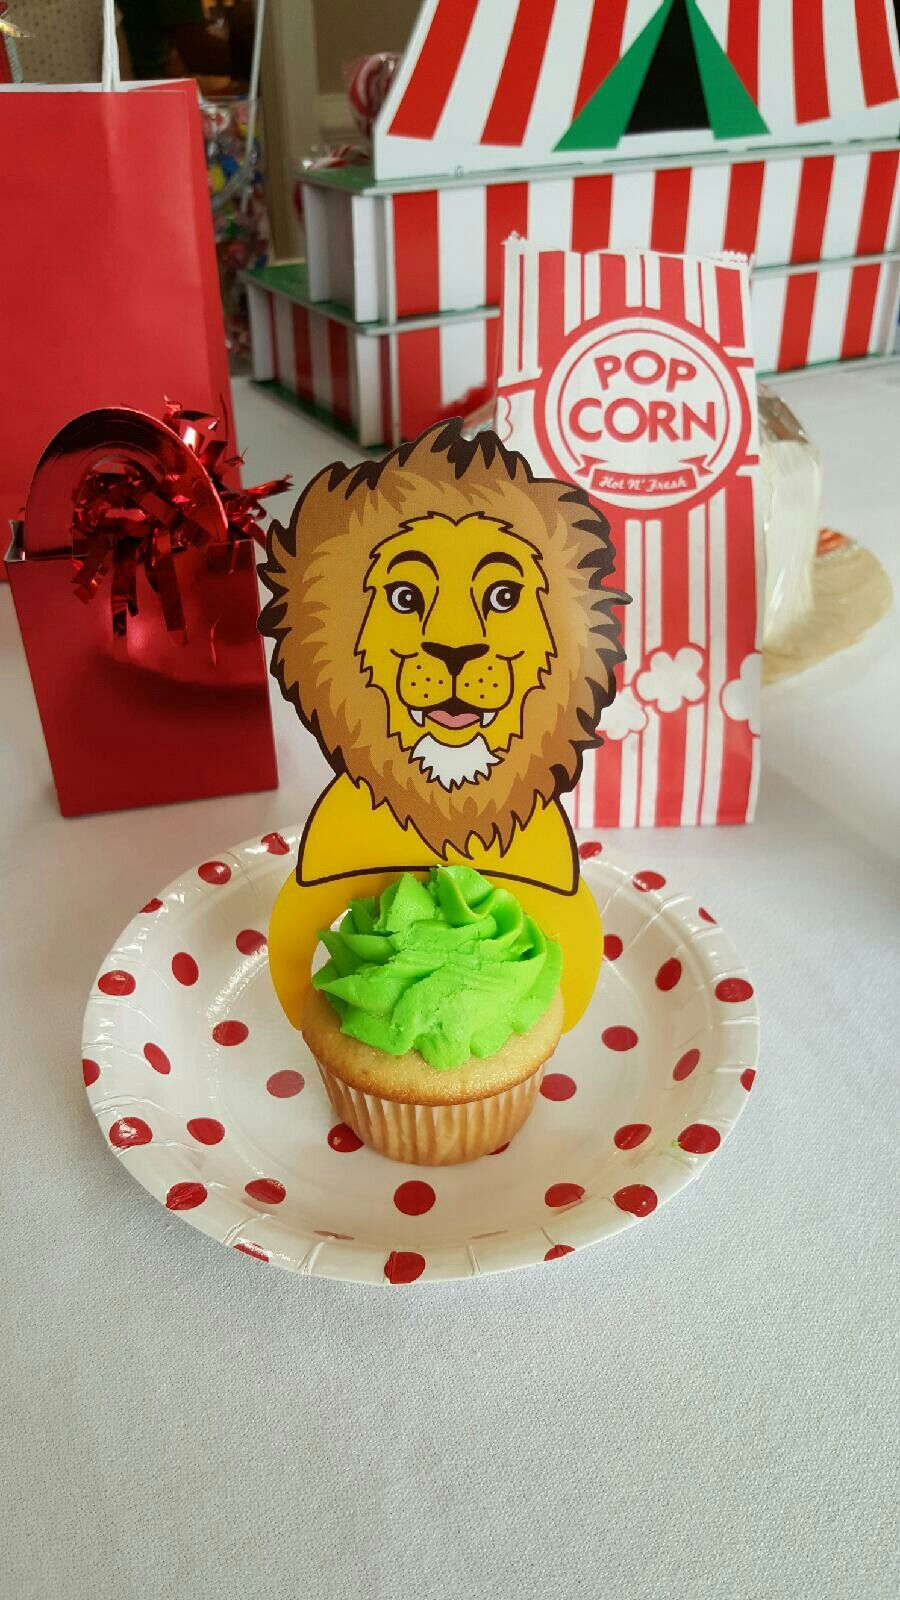 Cute cupcake pick from Oriental trading